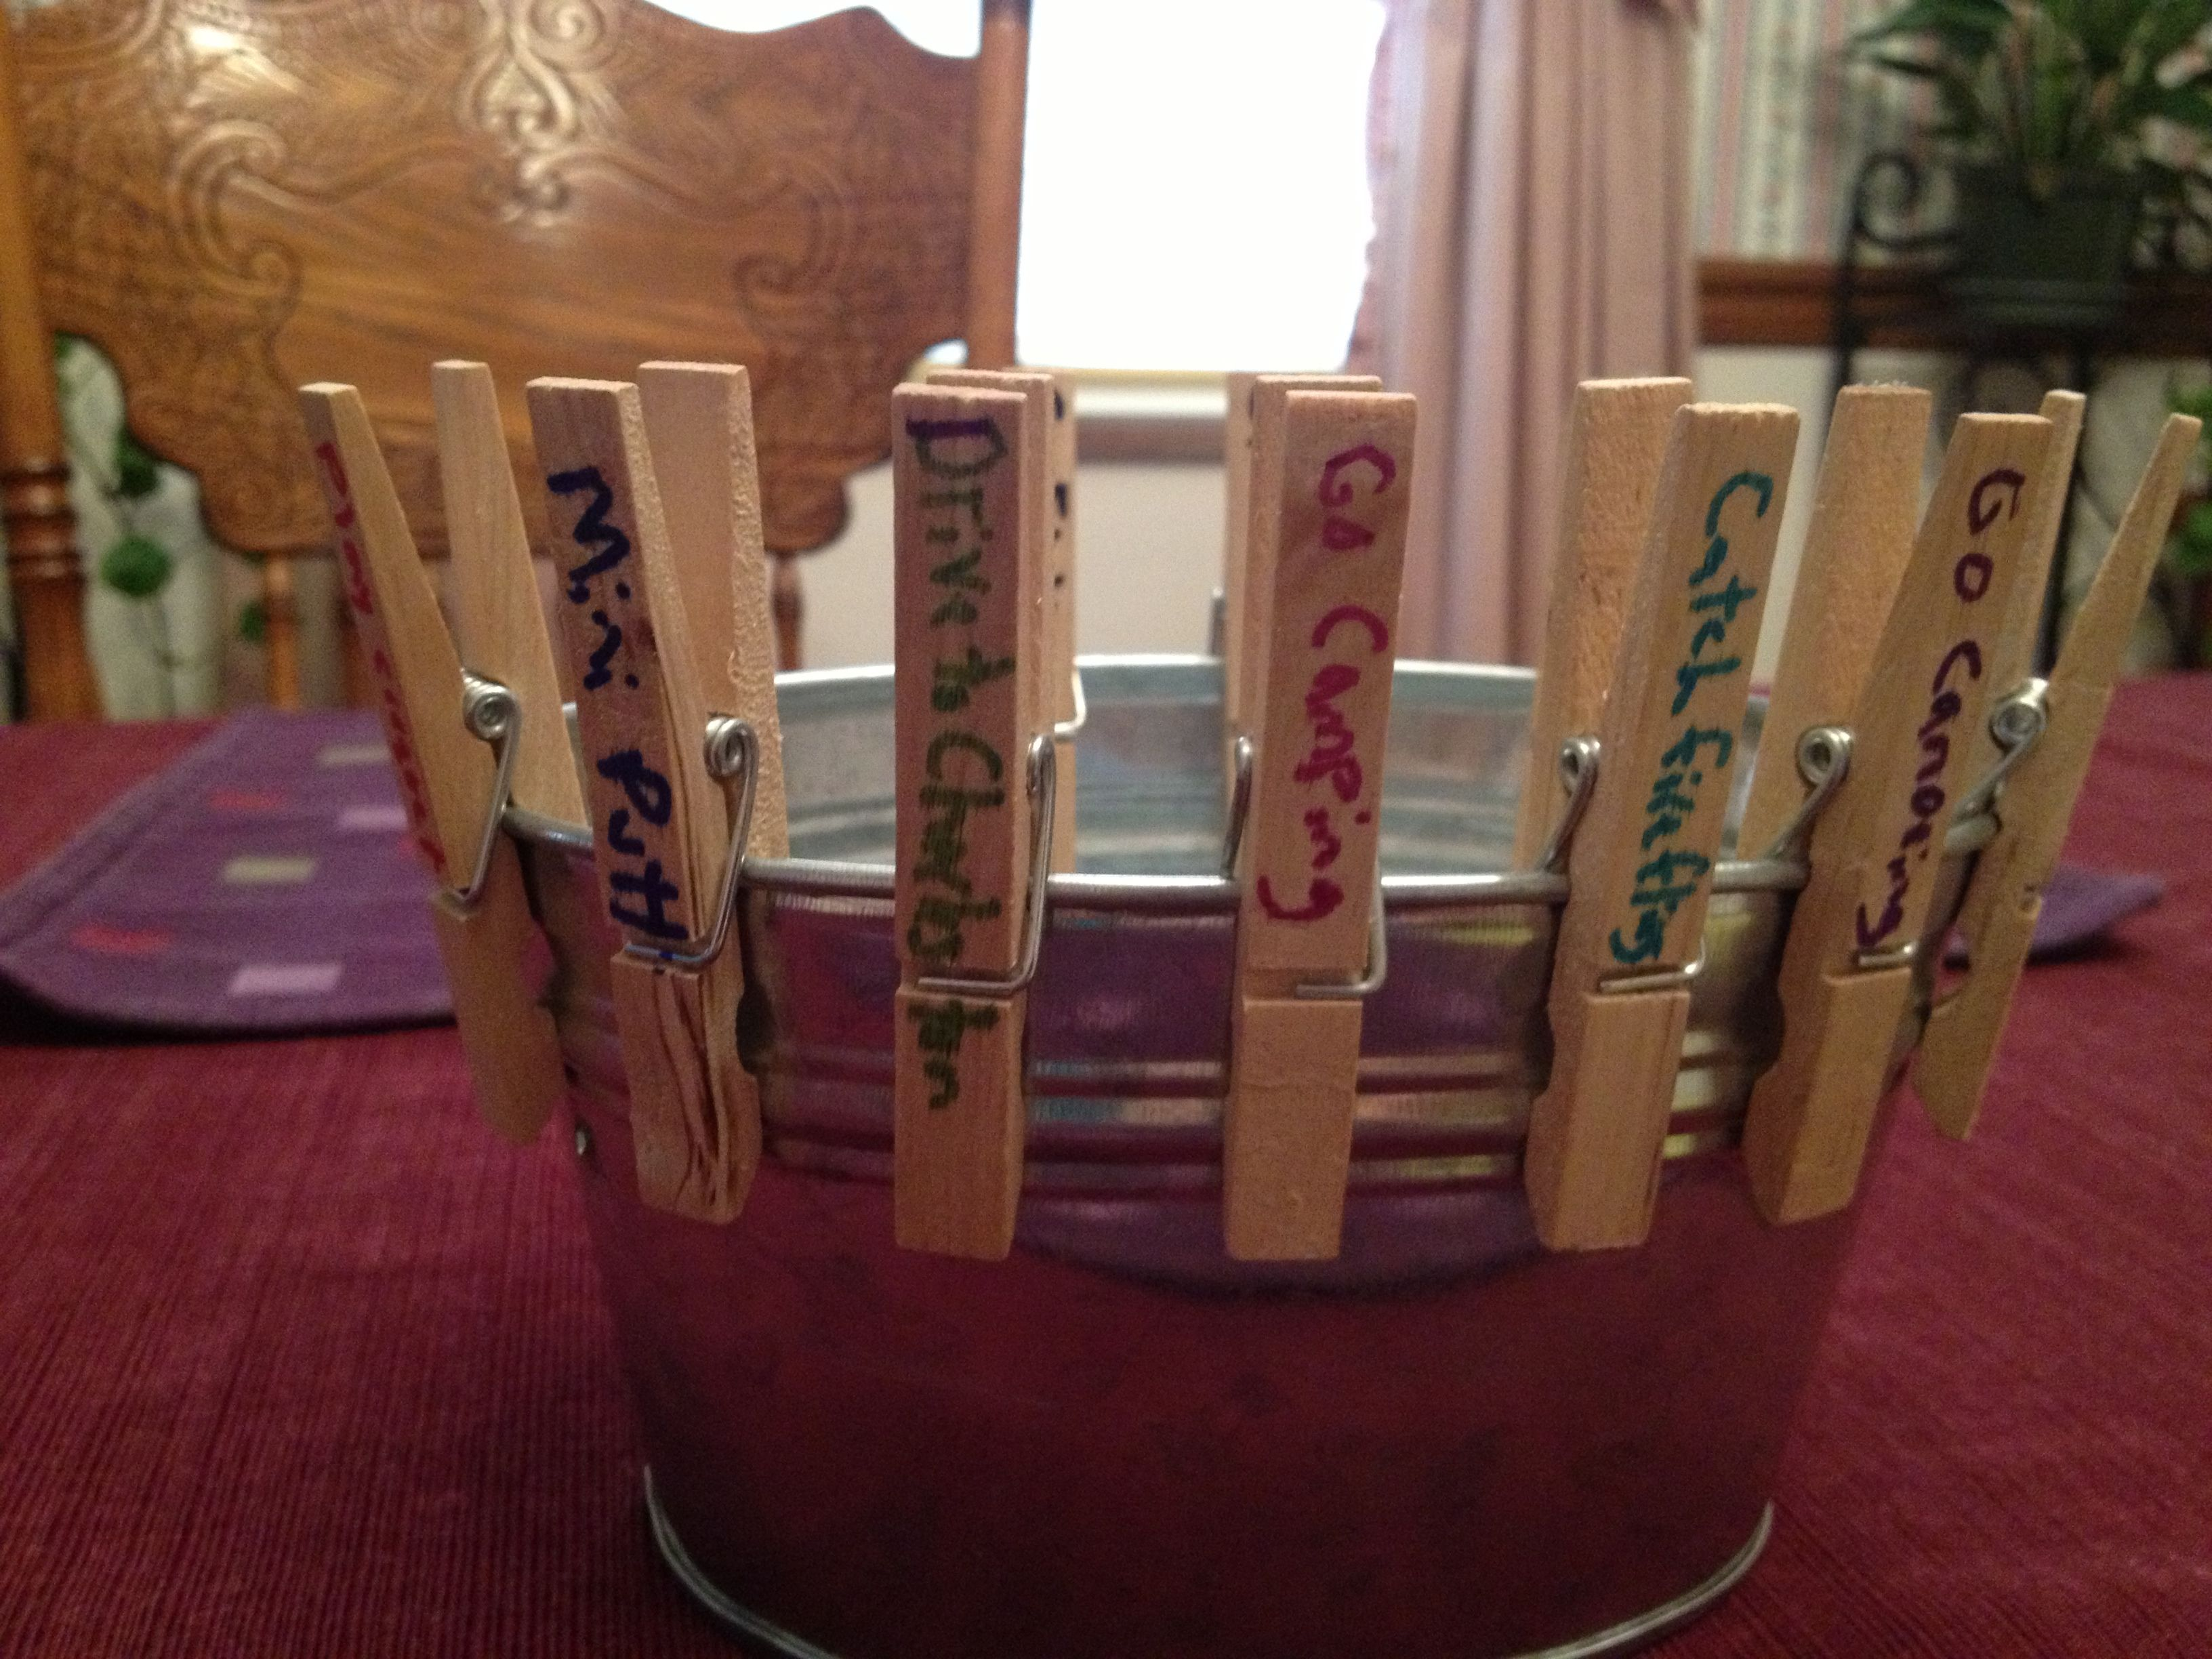 Summer fun bucket.... We write all the things we want to do over the summer and every time we do one, we take the clothespin off and put it in the bucket, by the end of the summer, our bucket will be full and we will have made lots of memories!